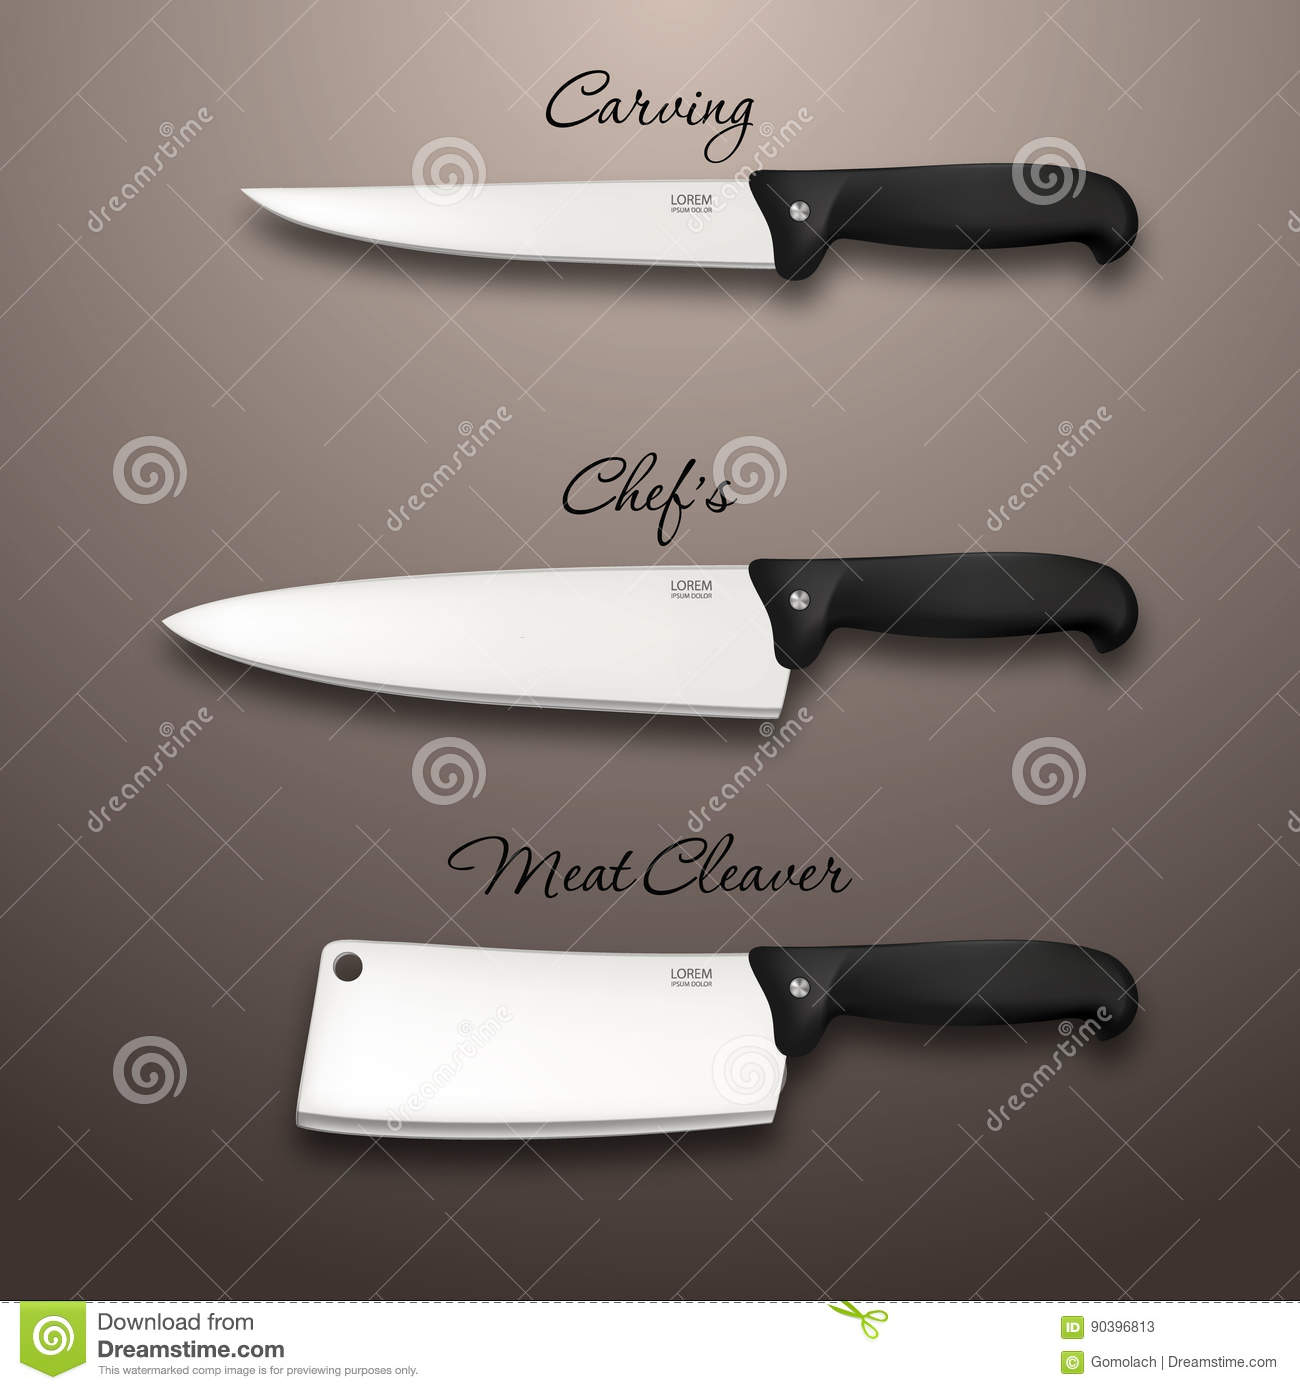 cutlery icon set vector realistic kitchen knives design template